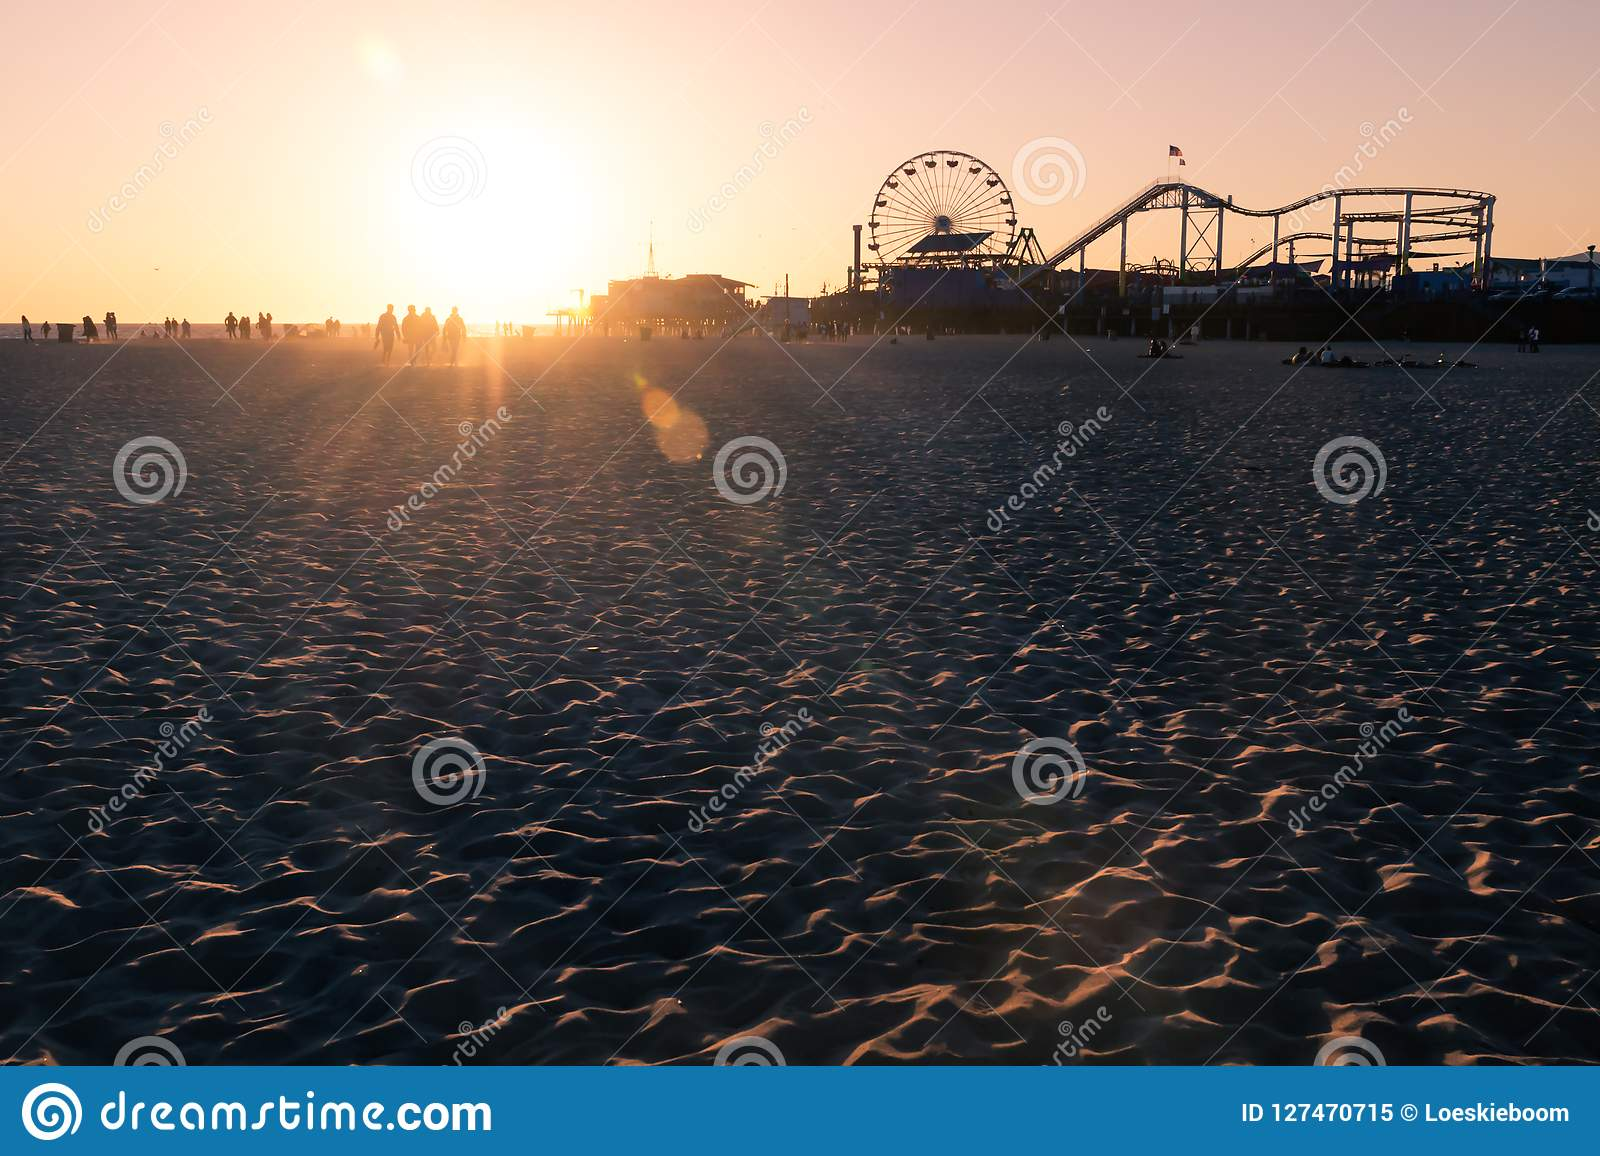 Silhouettes of people walking along Santa Monica beach and amusement park at sunset, Los Angeles, California